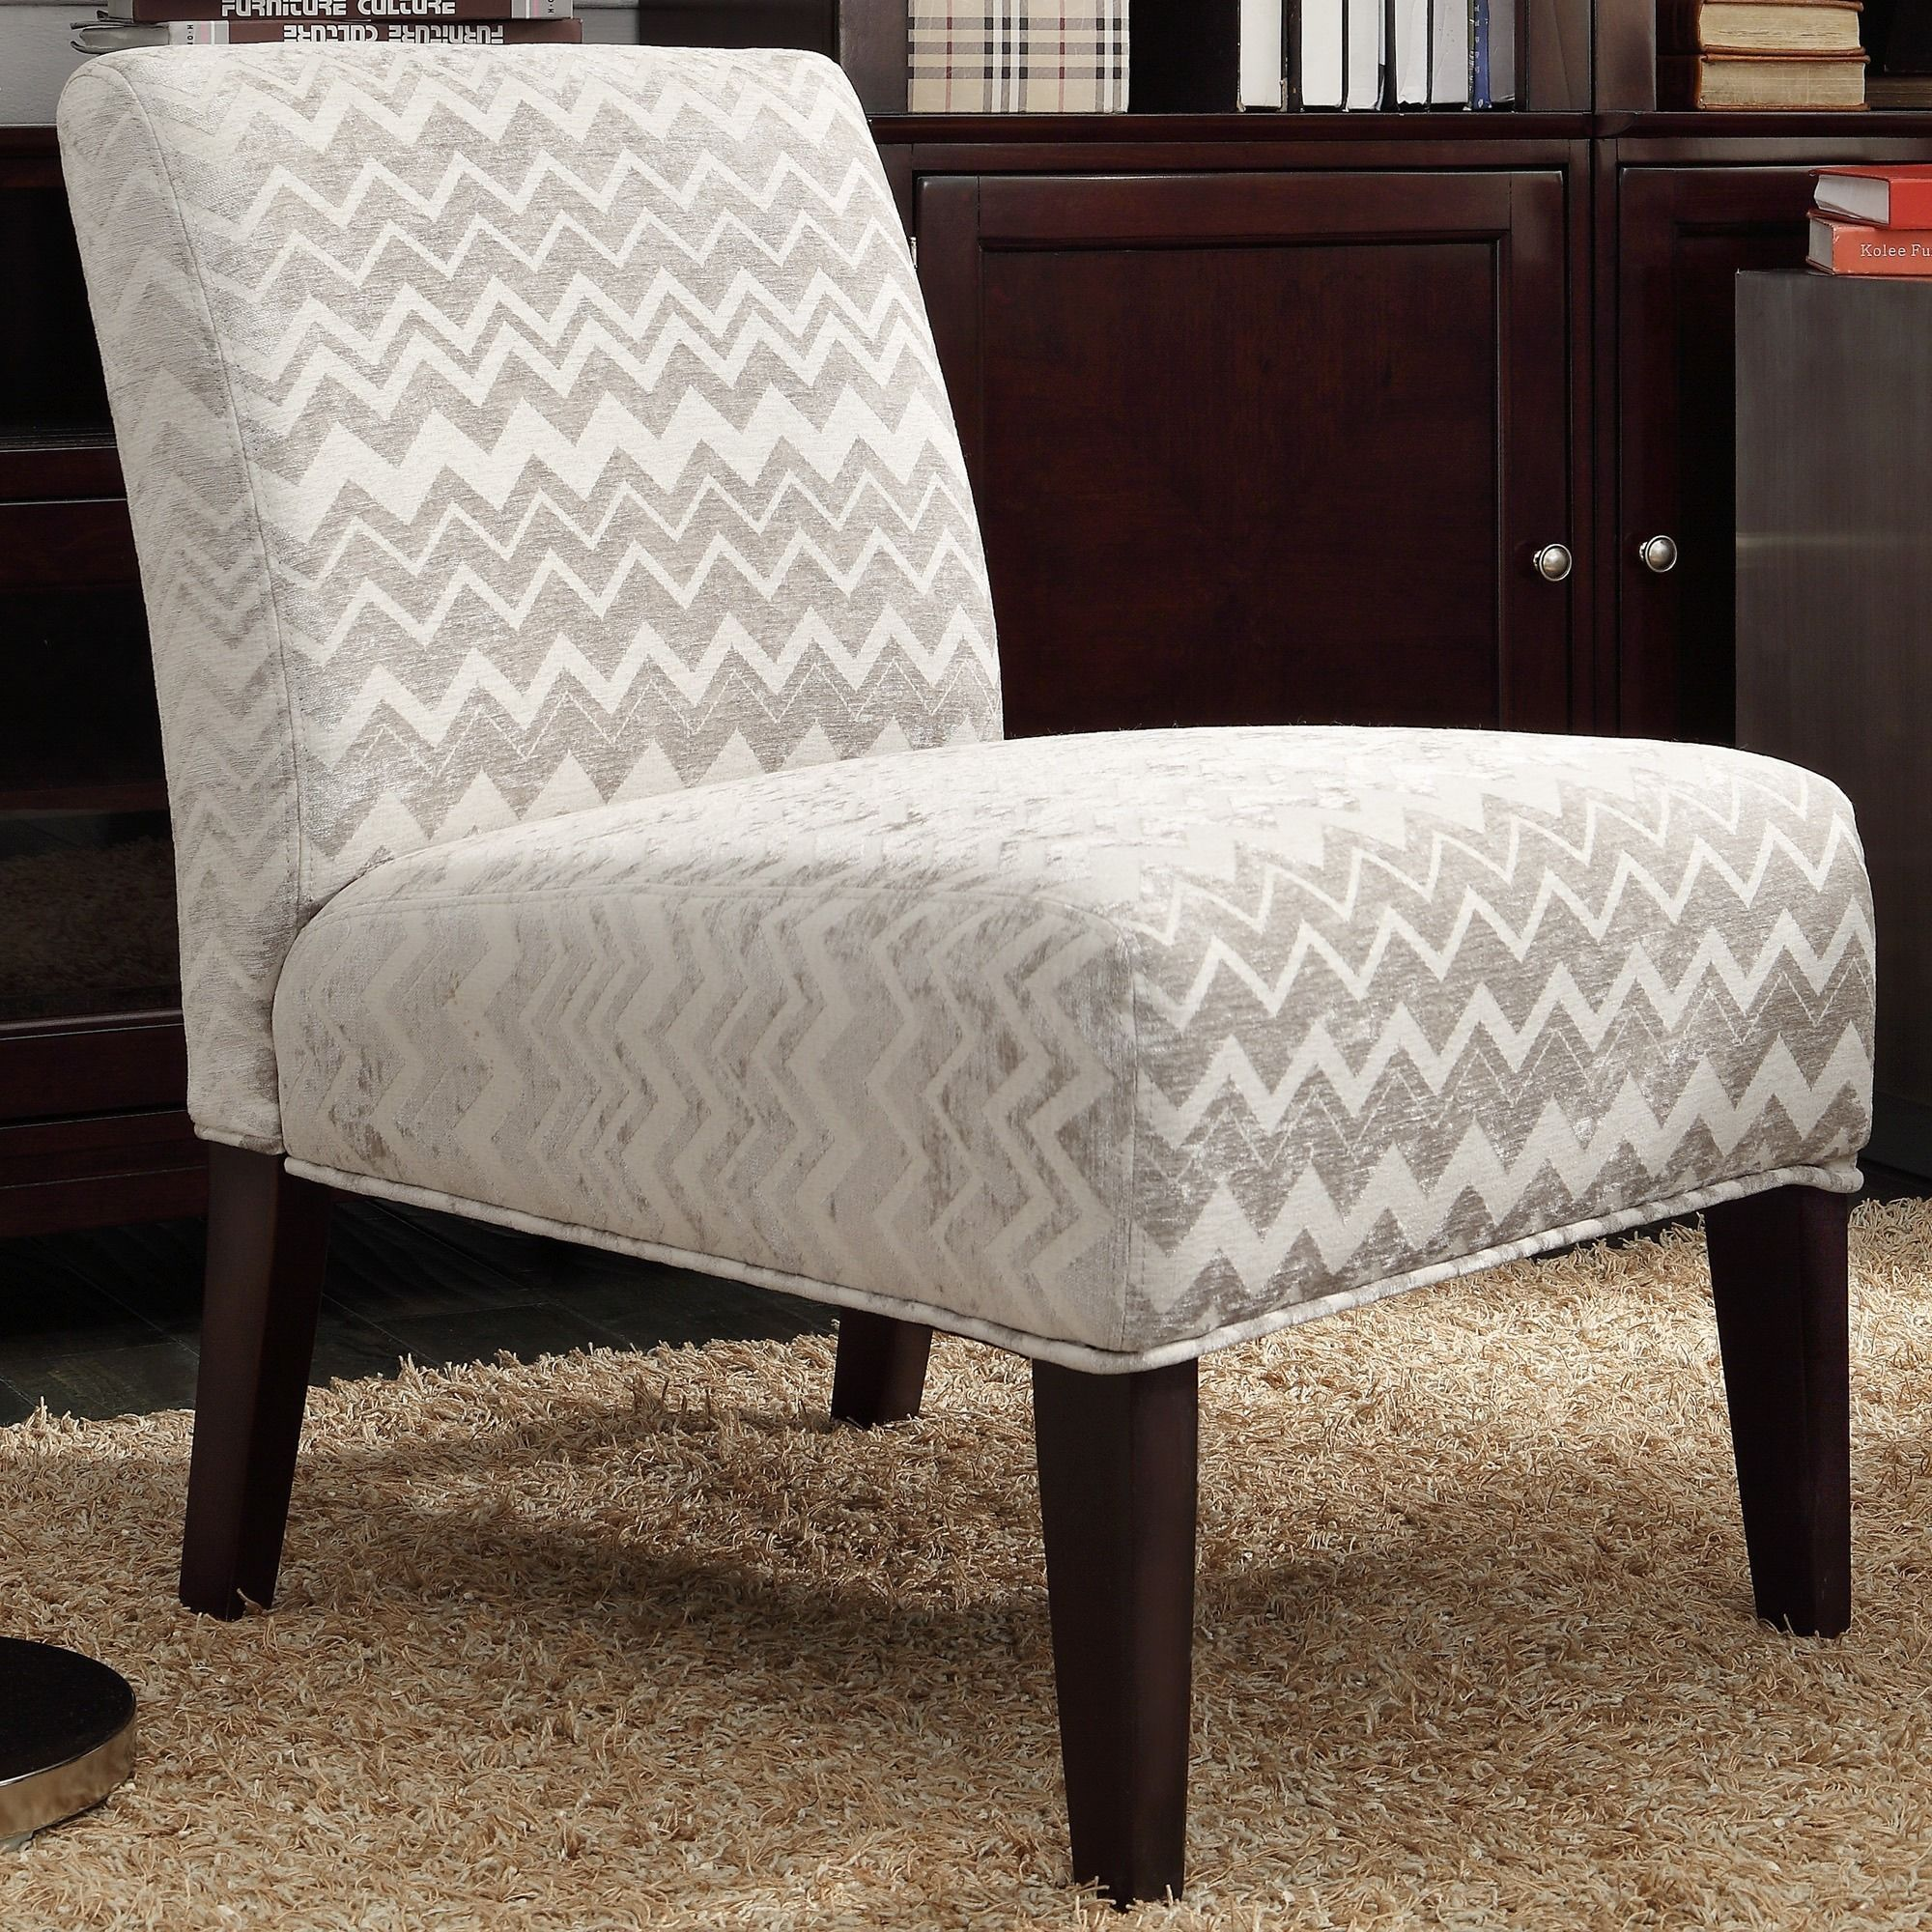 15 Unearthly Upholstery Fabric Leather Ideas Striped Furniture Upholstery Furniture Upholstery